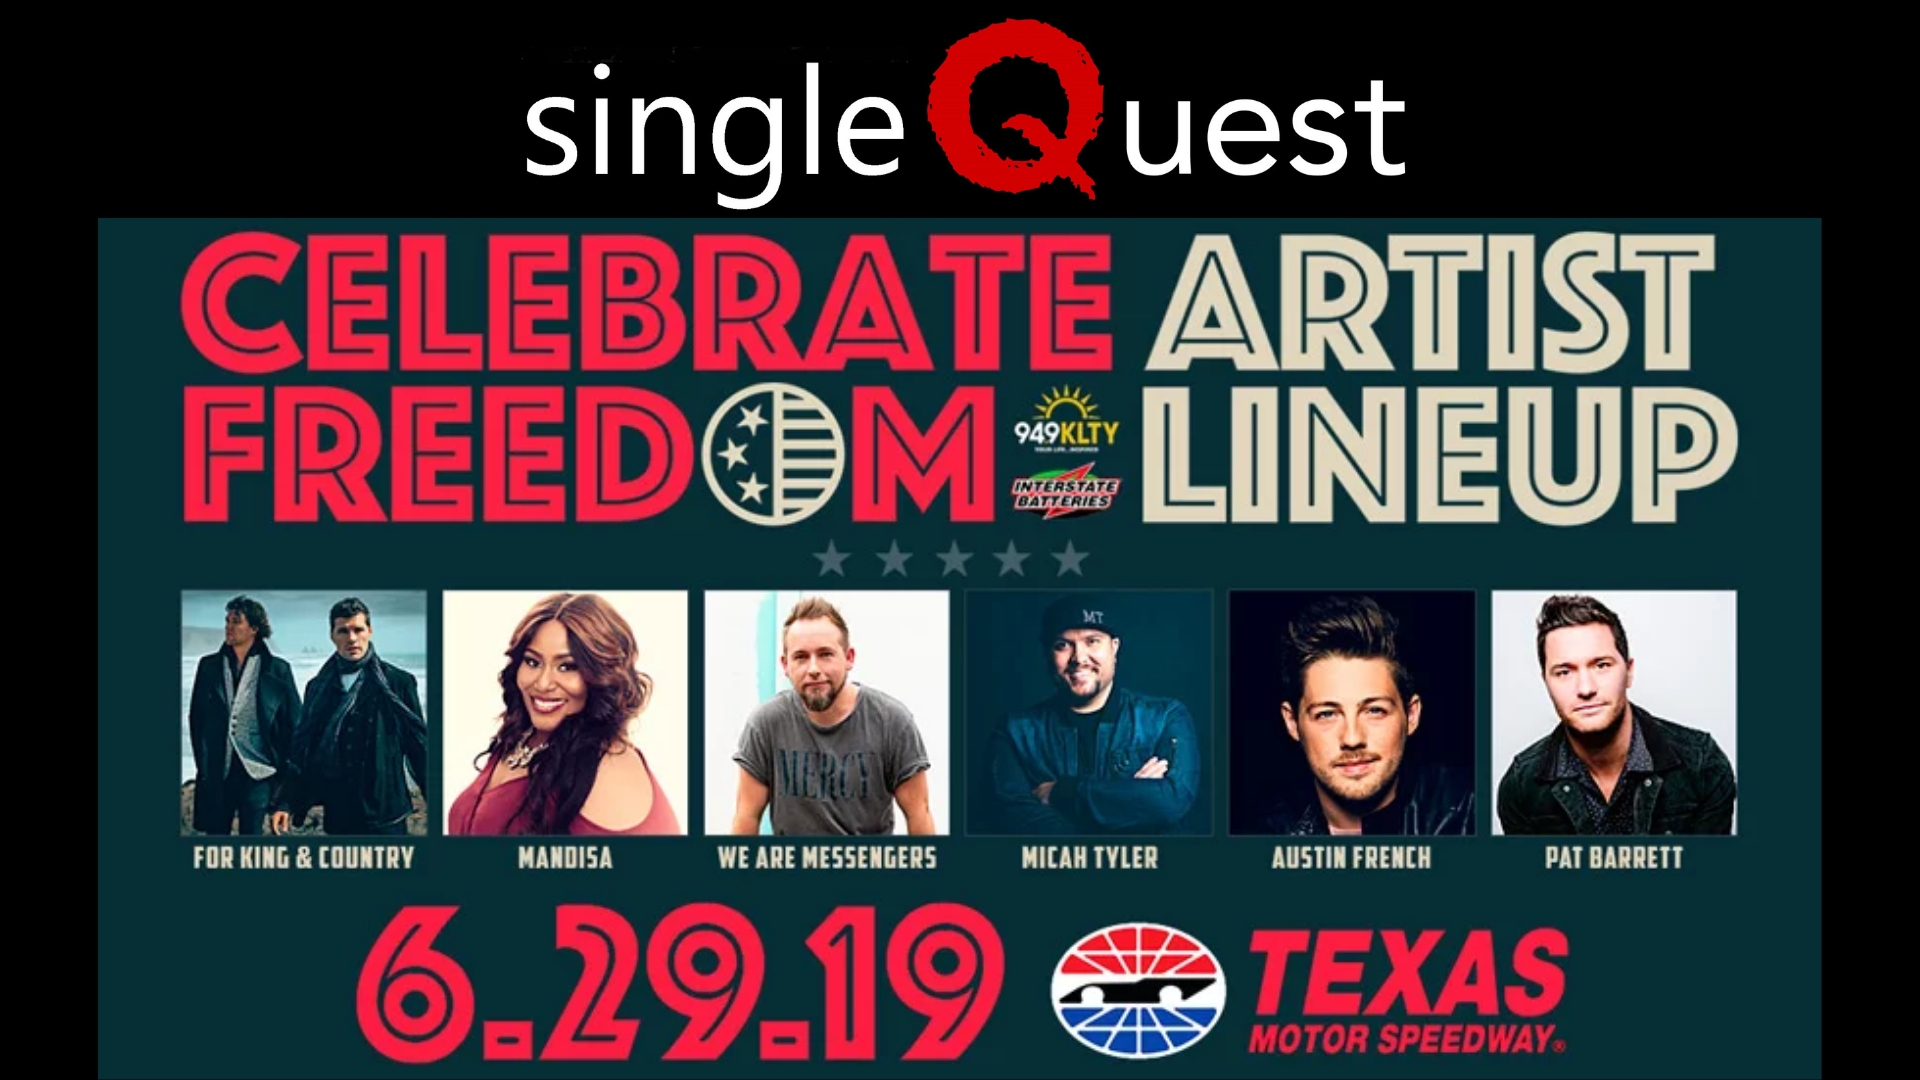 Join SingleQuest at the Celebrate Freedom concert! Admission to the concert is free, and the event will be hosted at Texas Motor Speedway. Register below and get ready for a fun evening together!